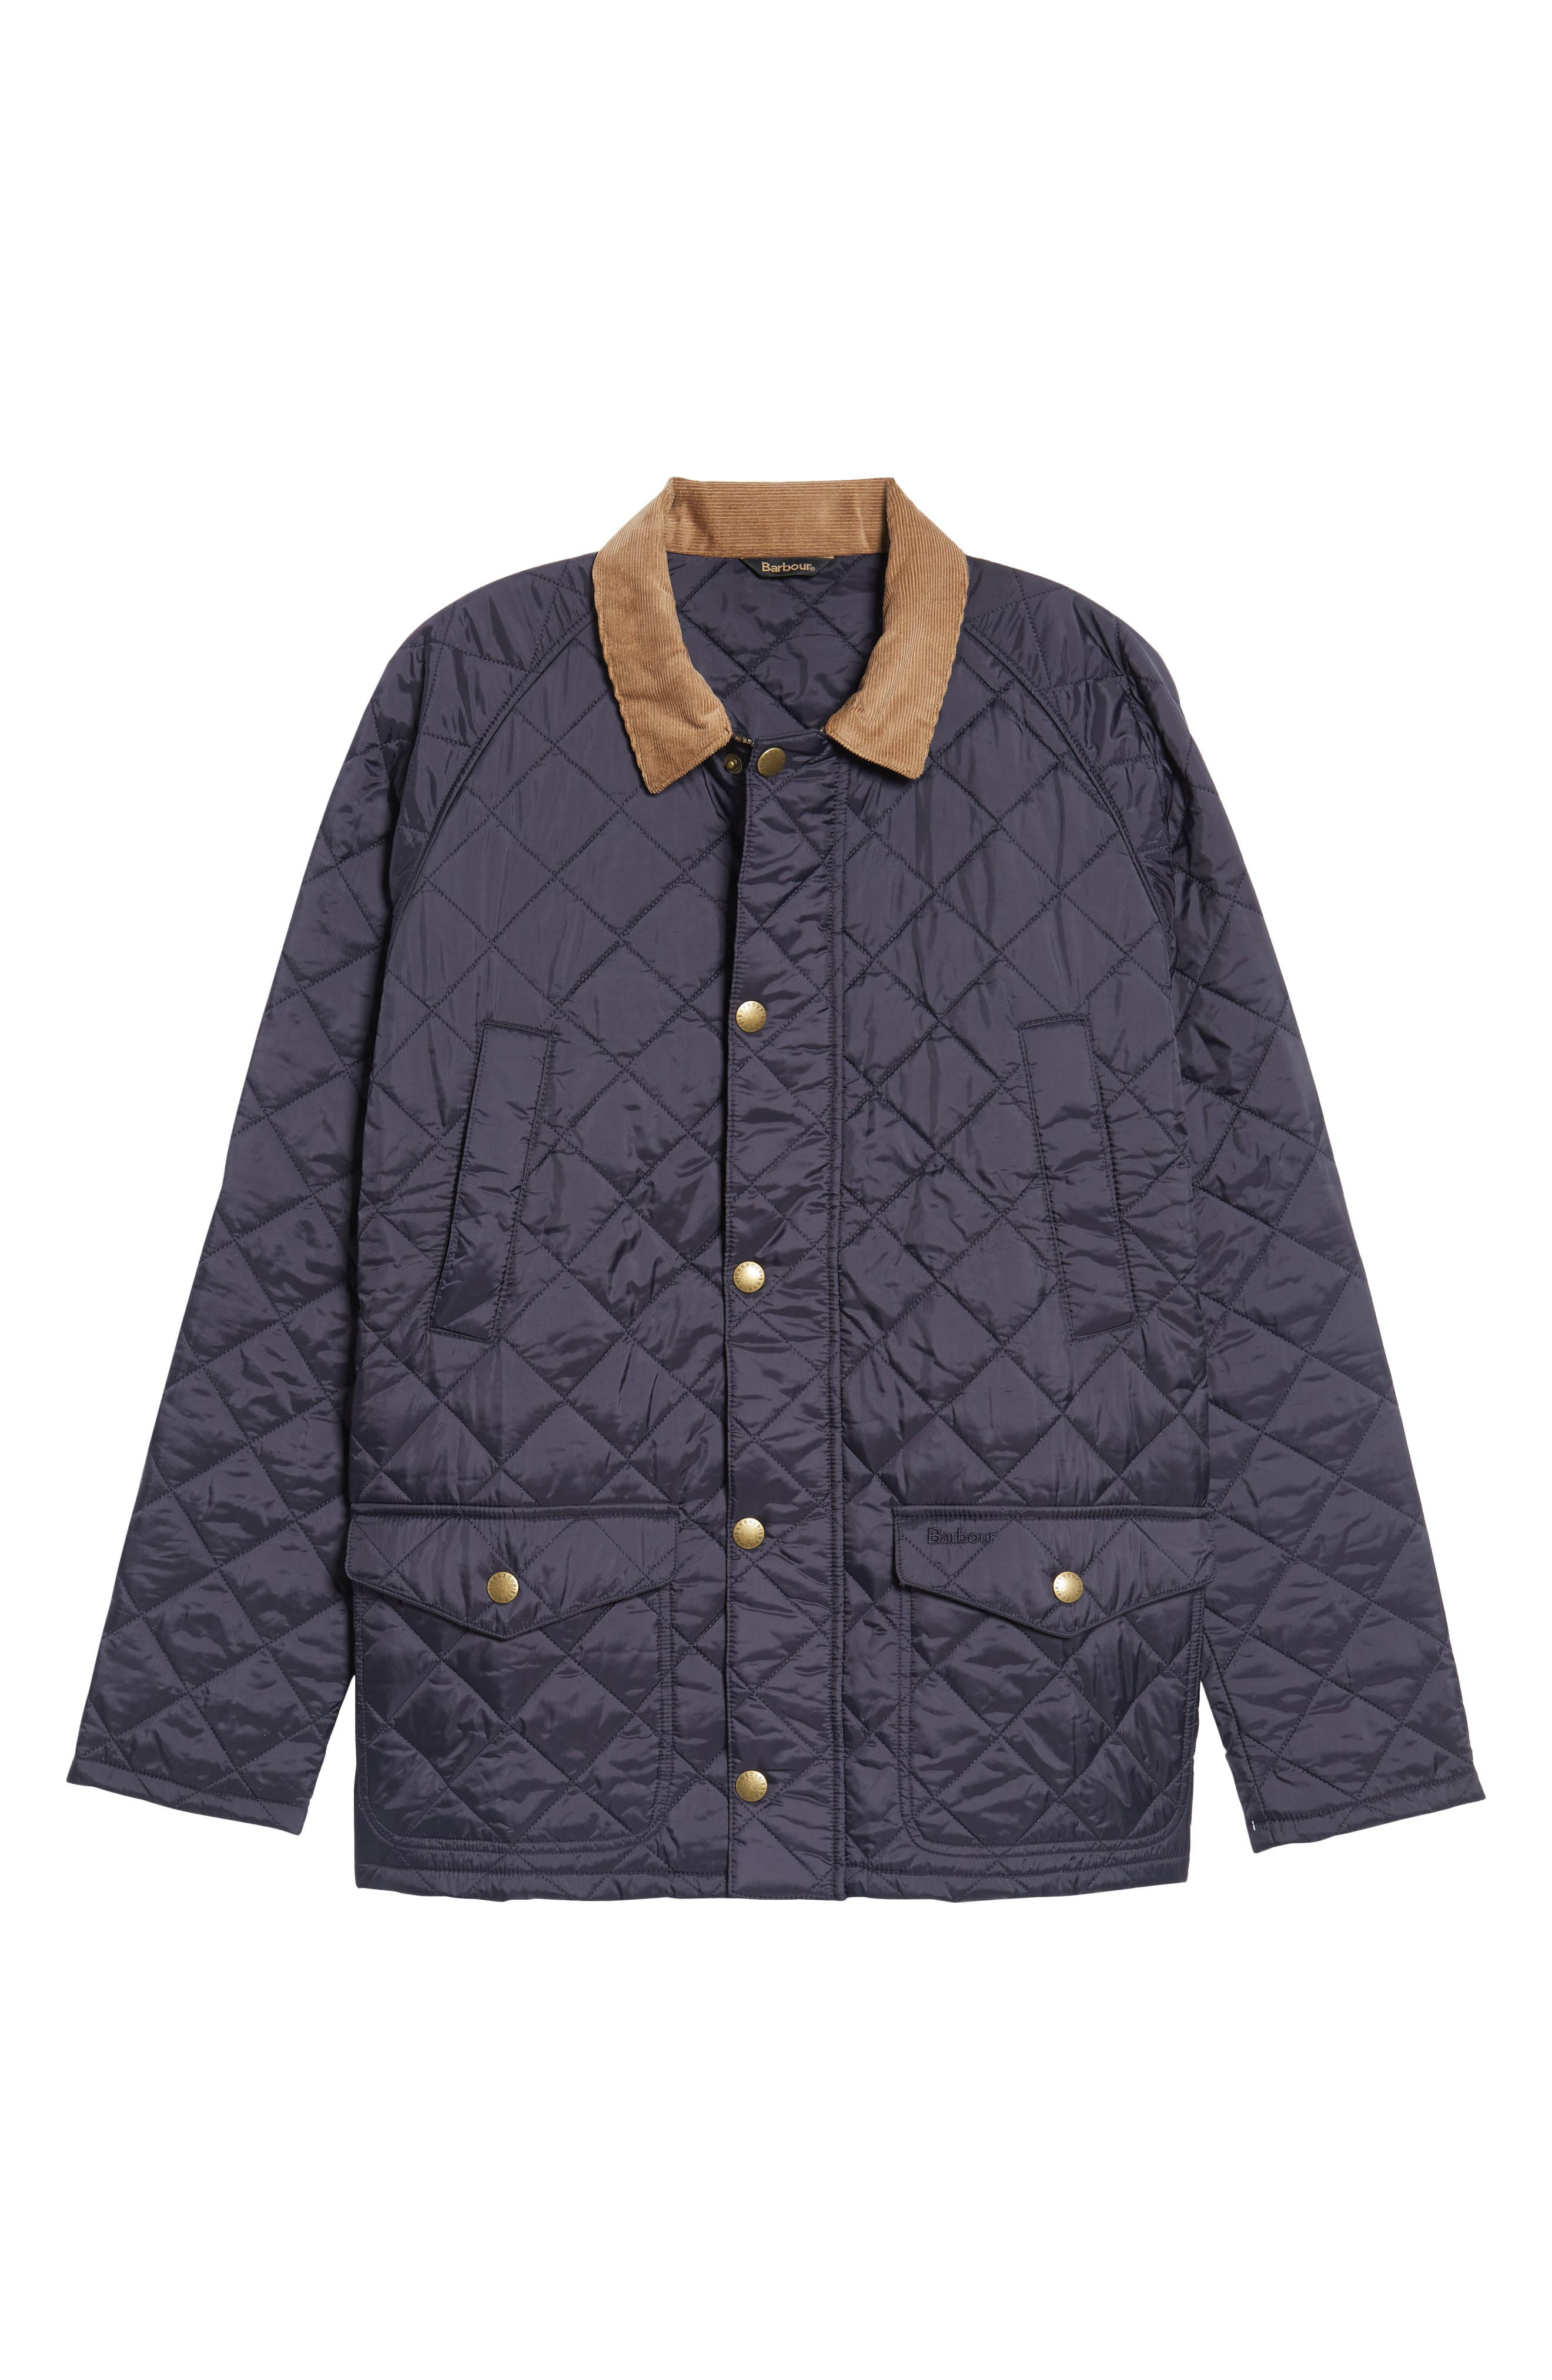 'Canterdale' Slim Fit Water-Resistant Diamond Quilted Jacket,                             Alternate thumbnail 6, color,                             Navy